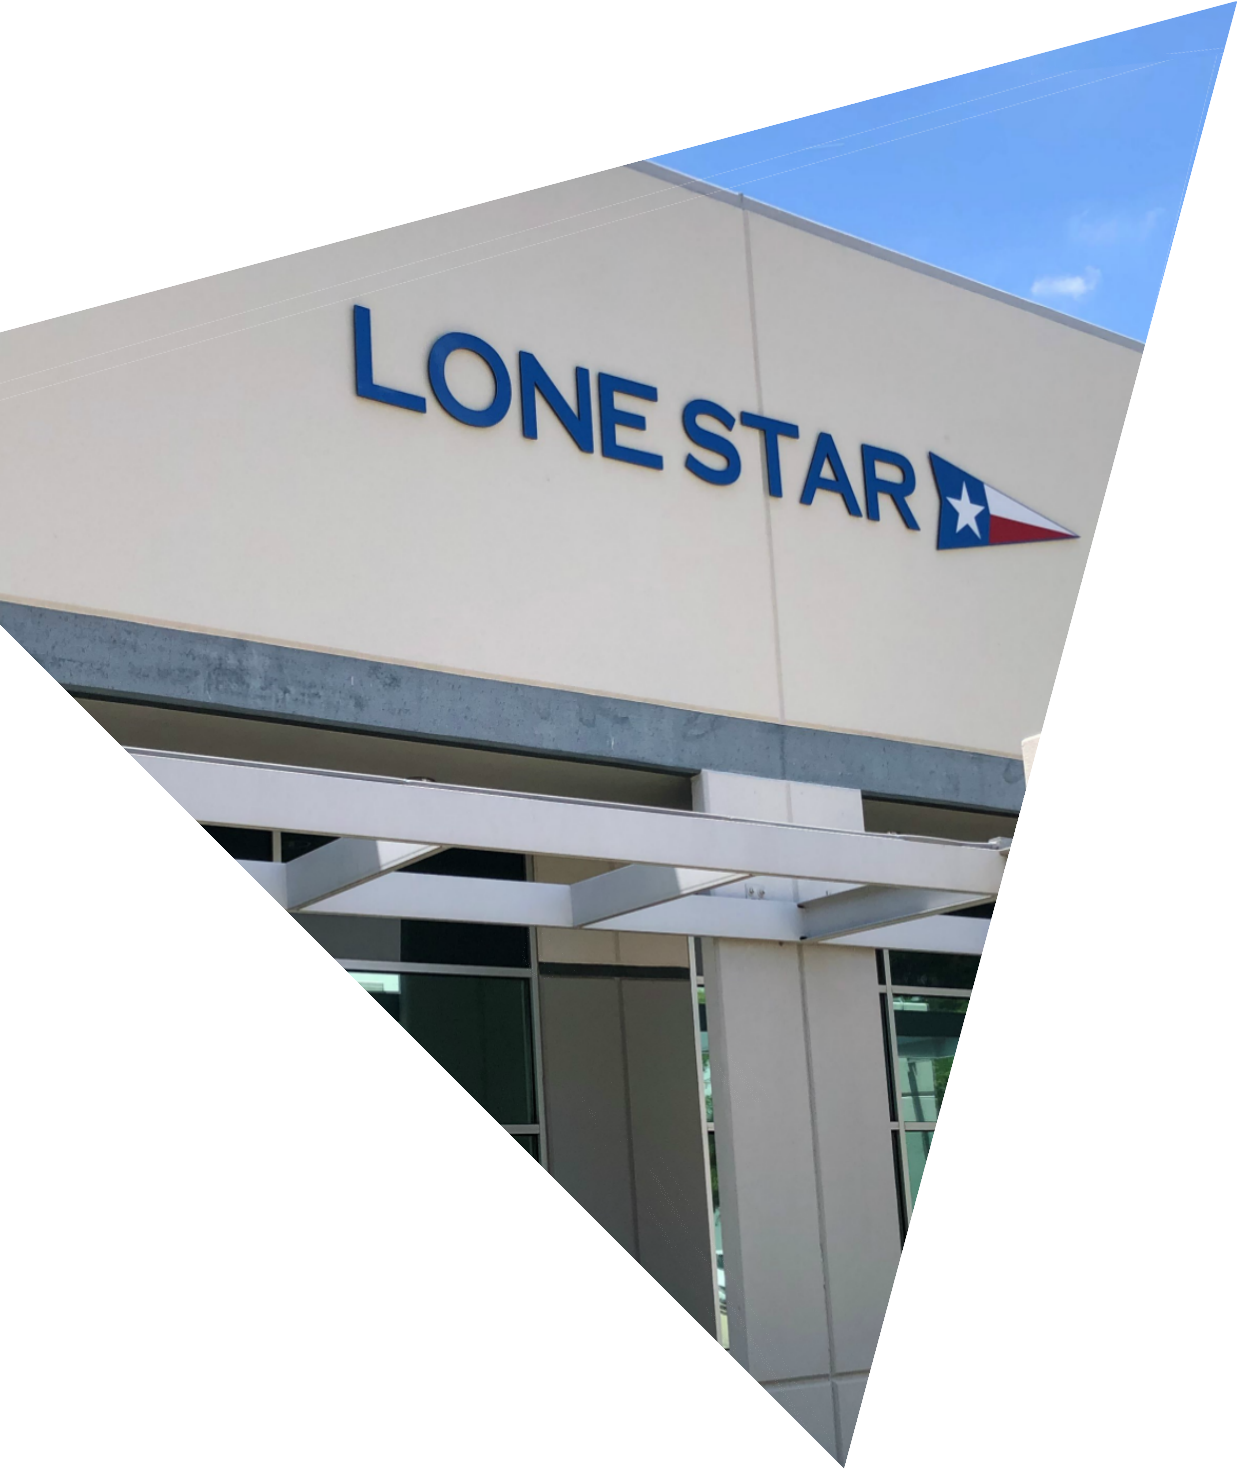 https://www.lone-star.com/wp-content/uploads/2019/07/img-experience-1.png